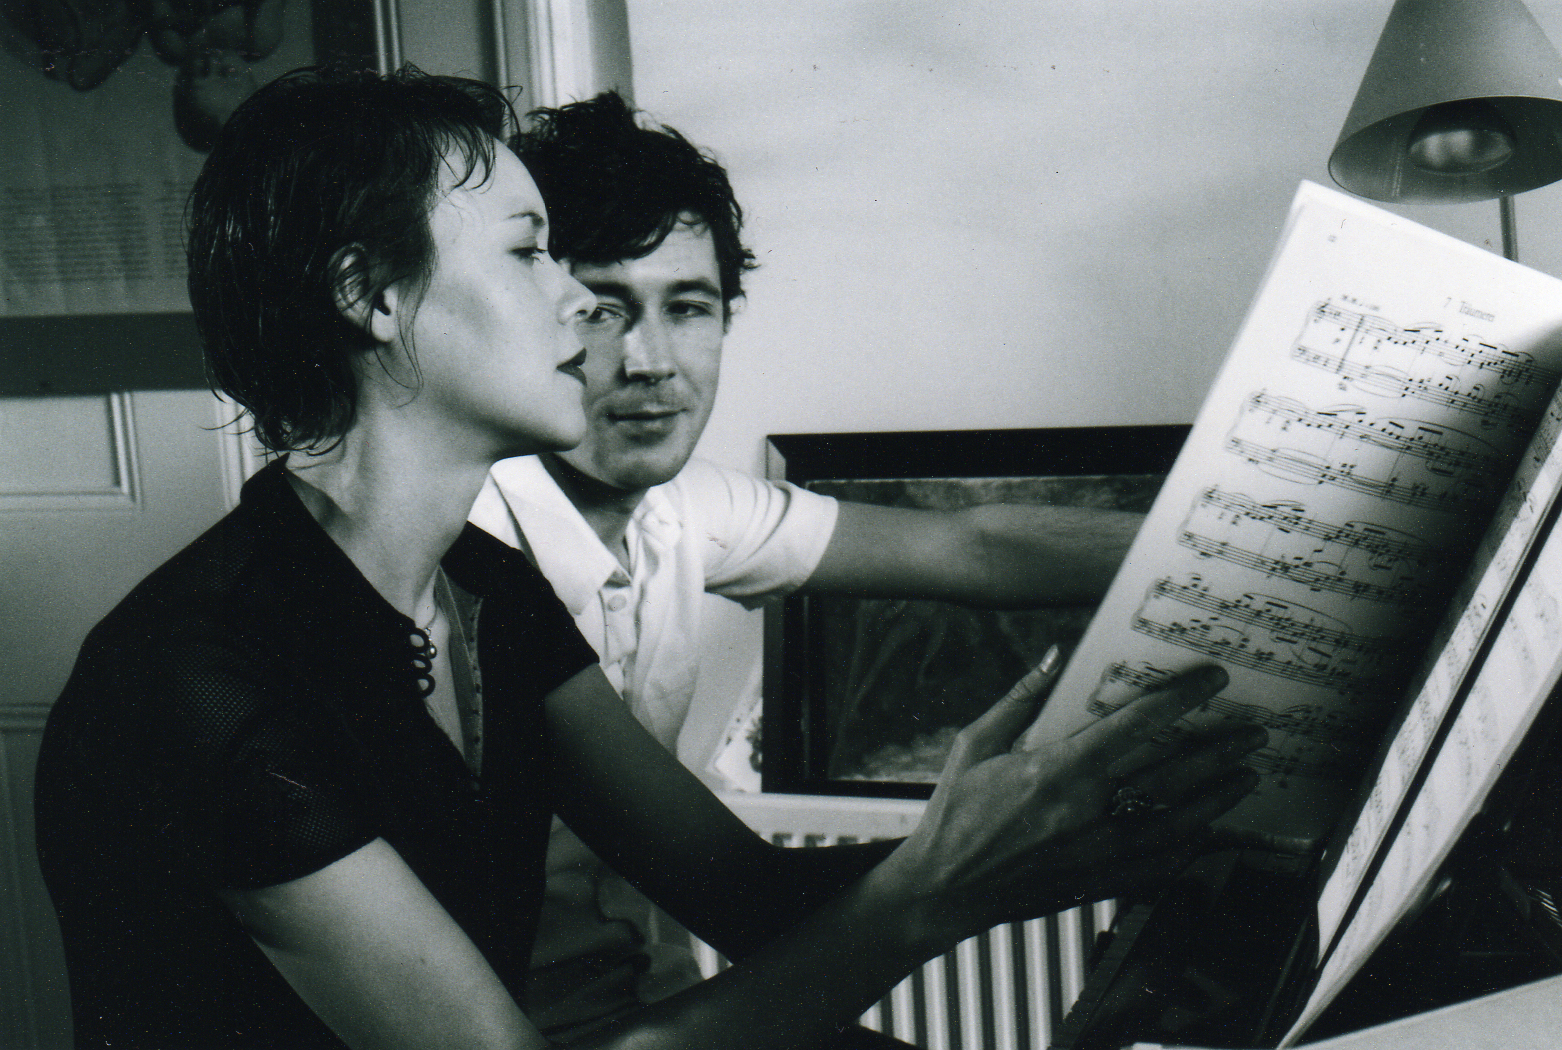 Photo Finish - Elen & Joe at the piano black and white Photo no 2.jpg